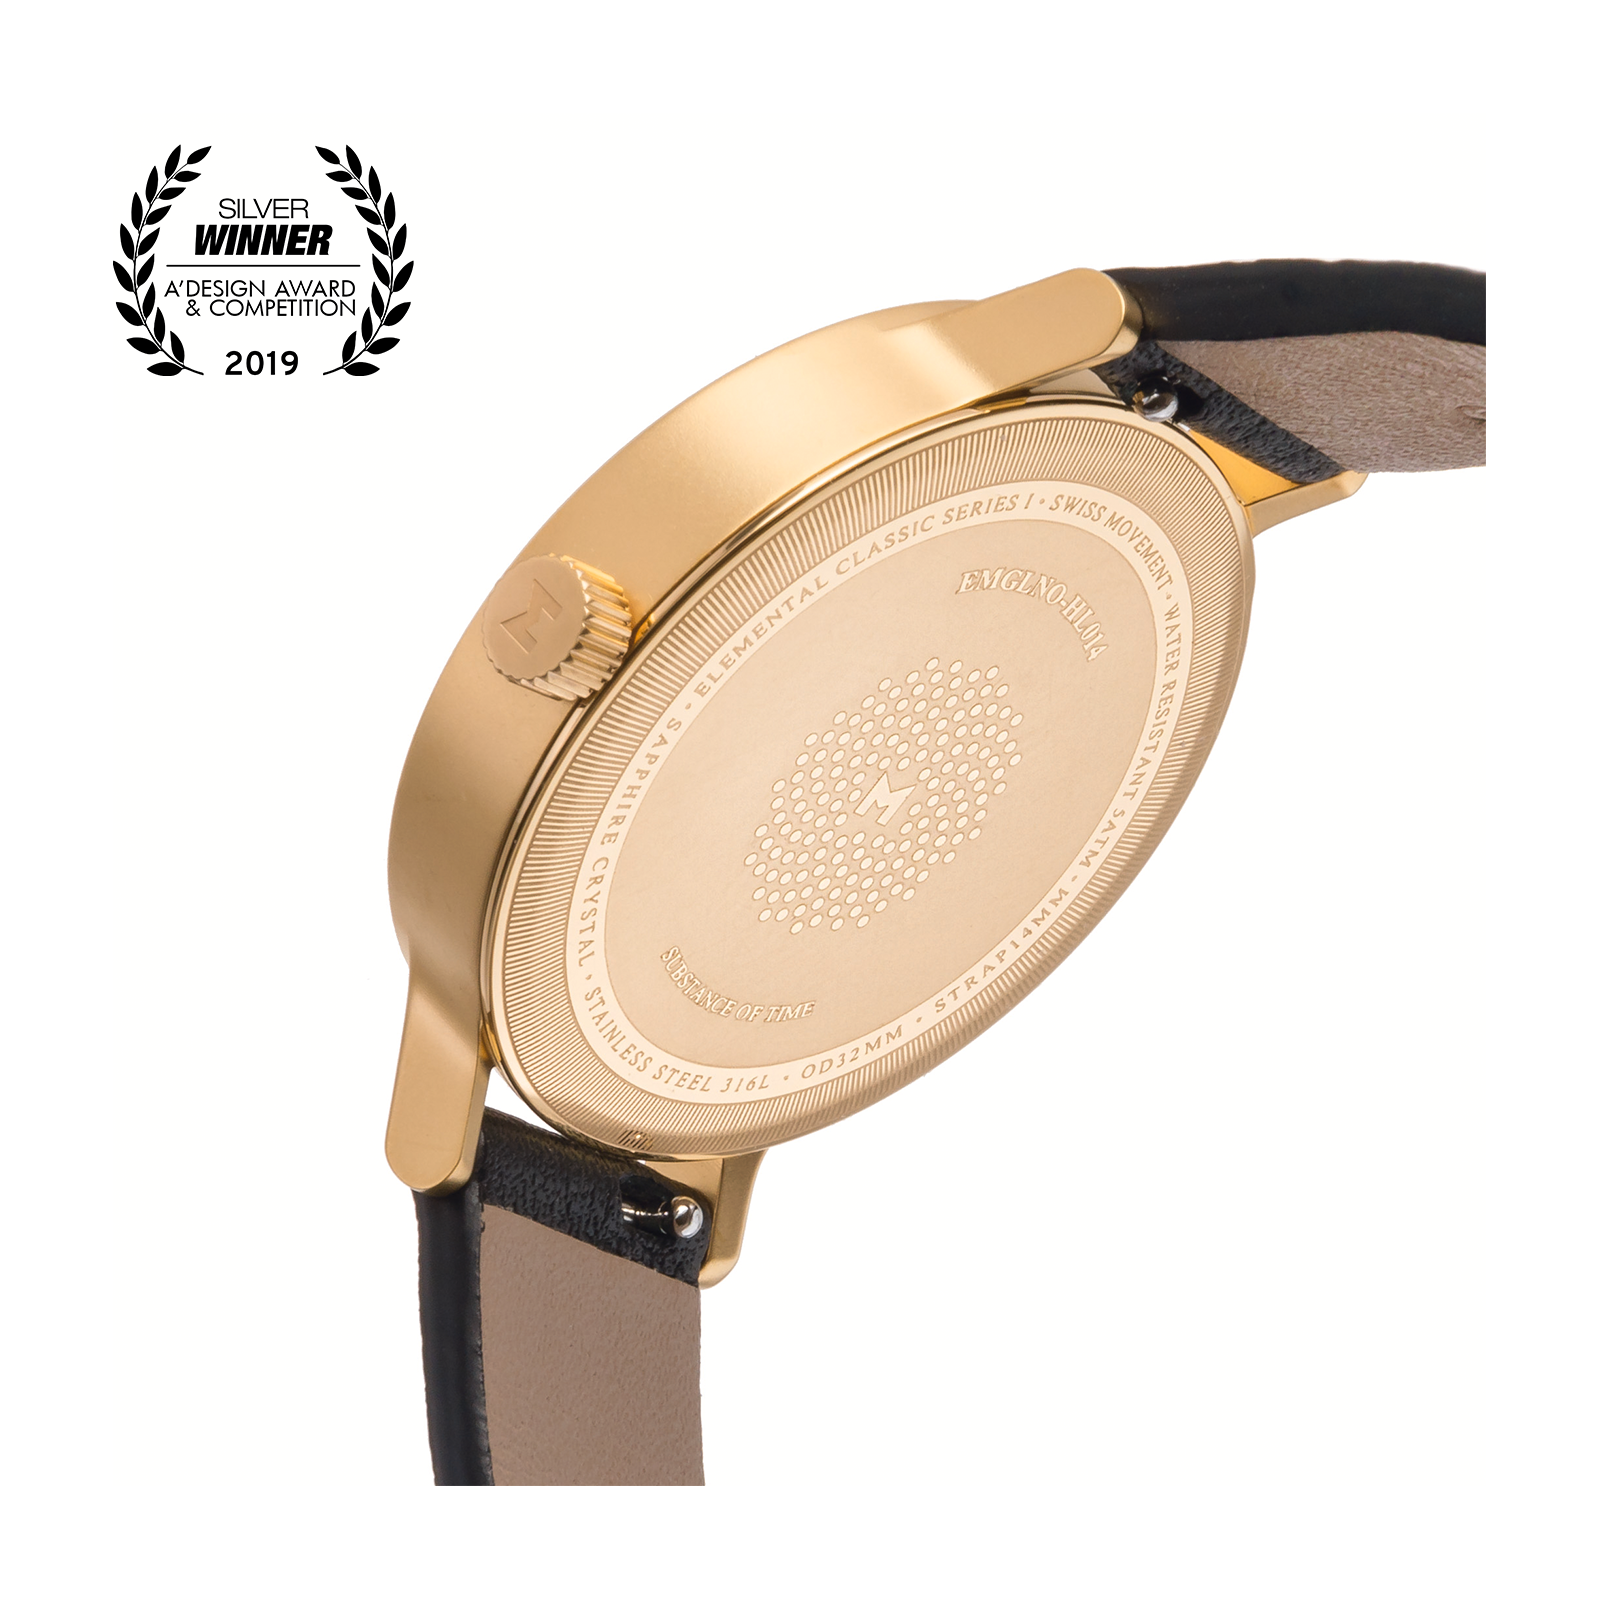 MYKU A DESIGN AWARD Francois Hurtaud Design